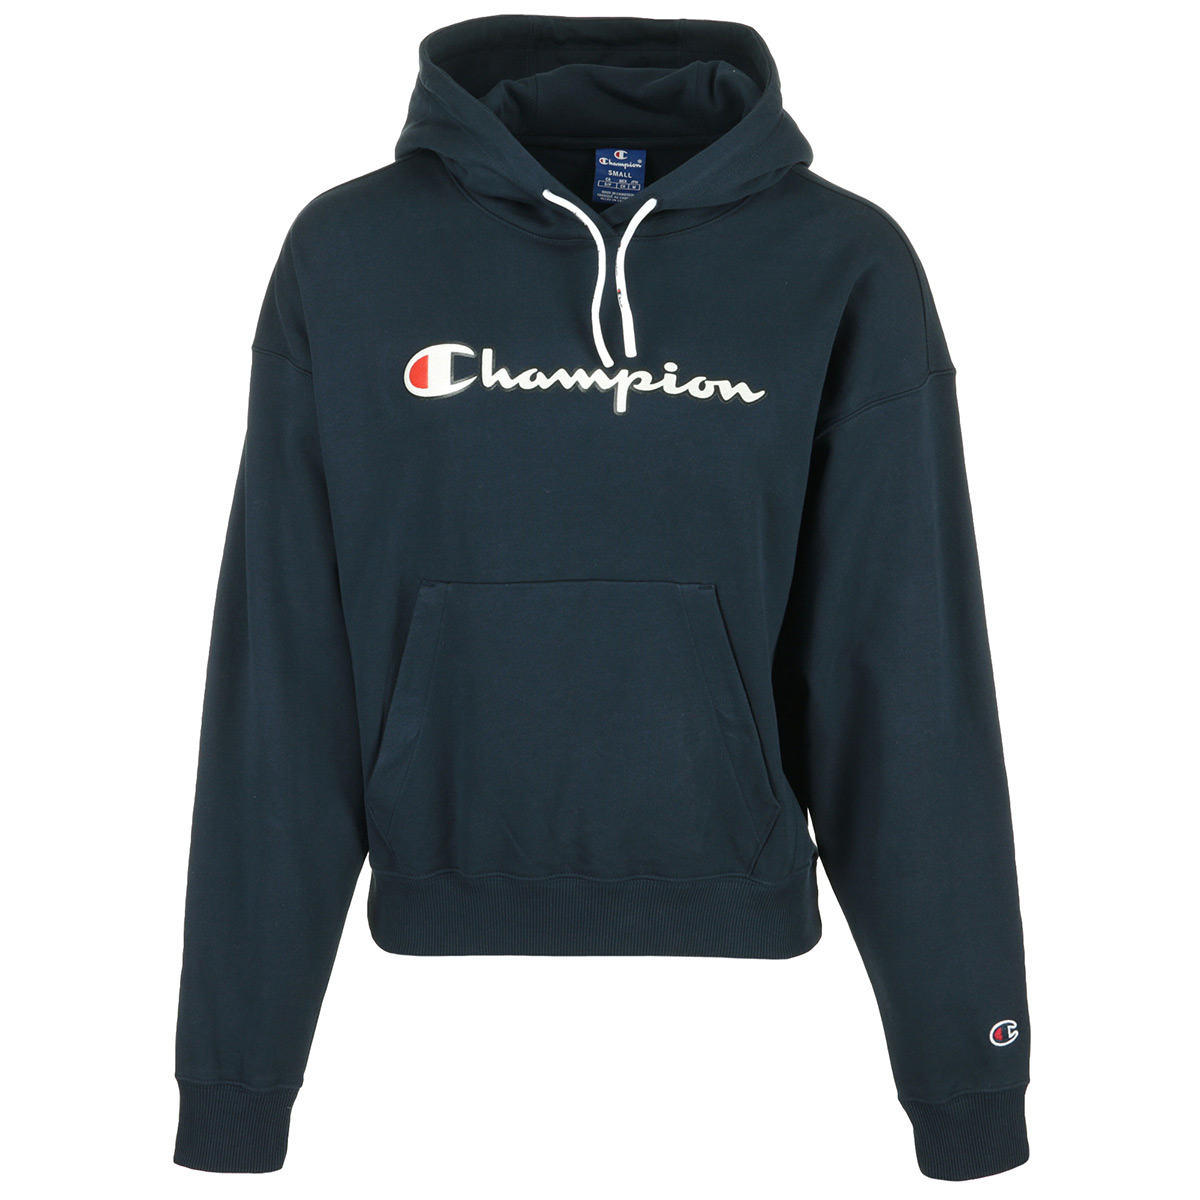 Champion Hooded Sweatshirt Wn's